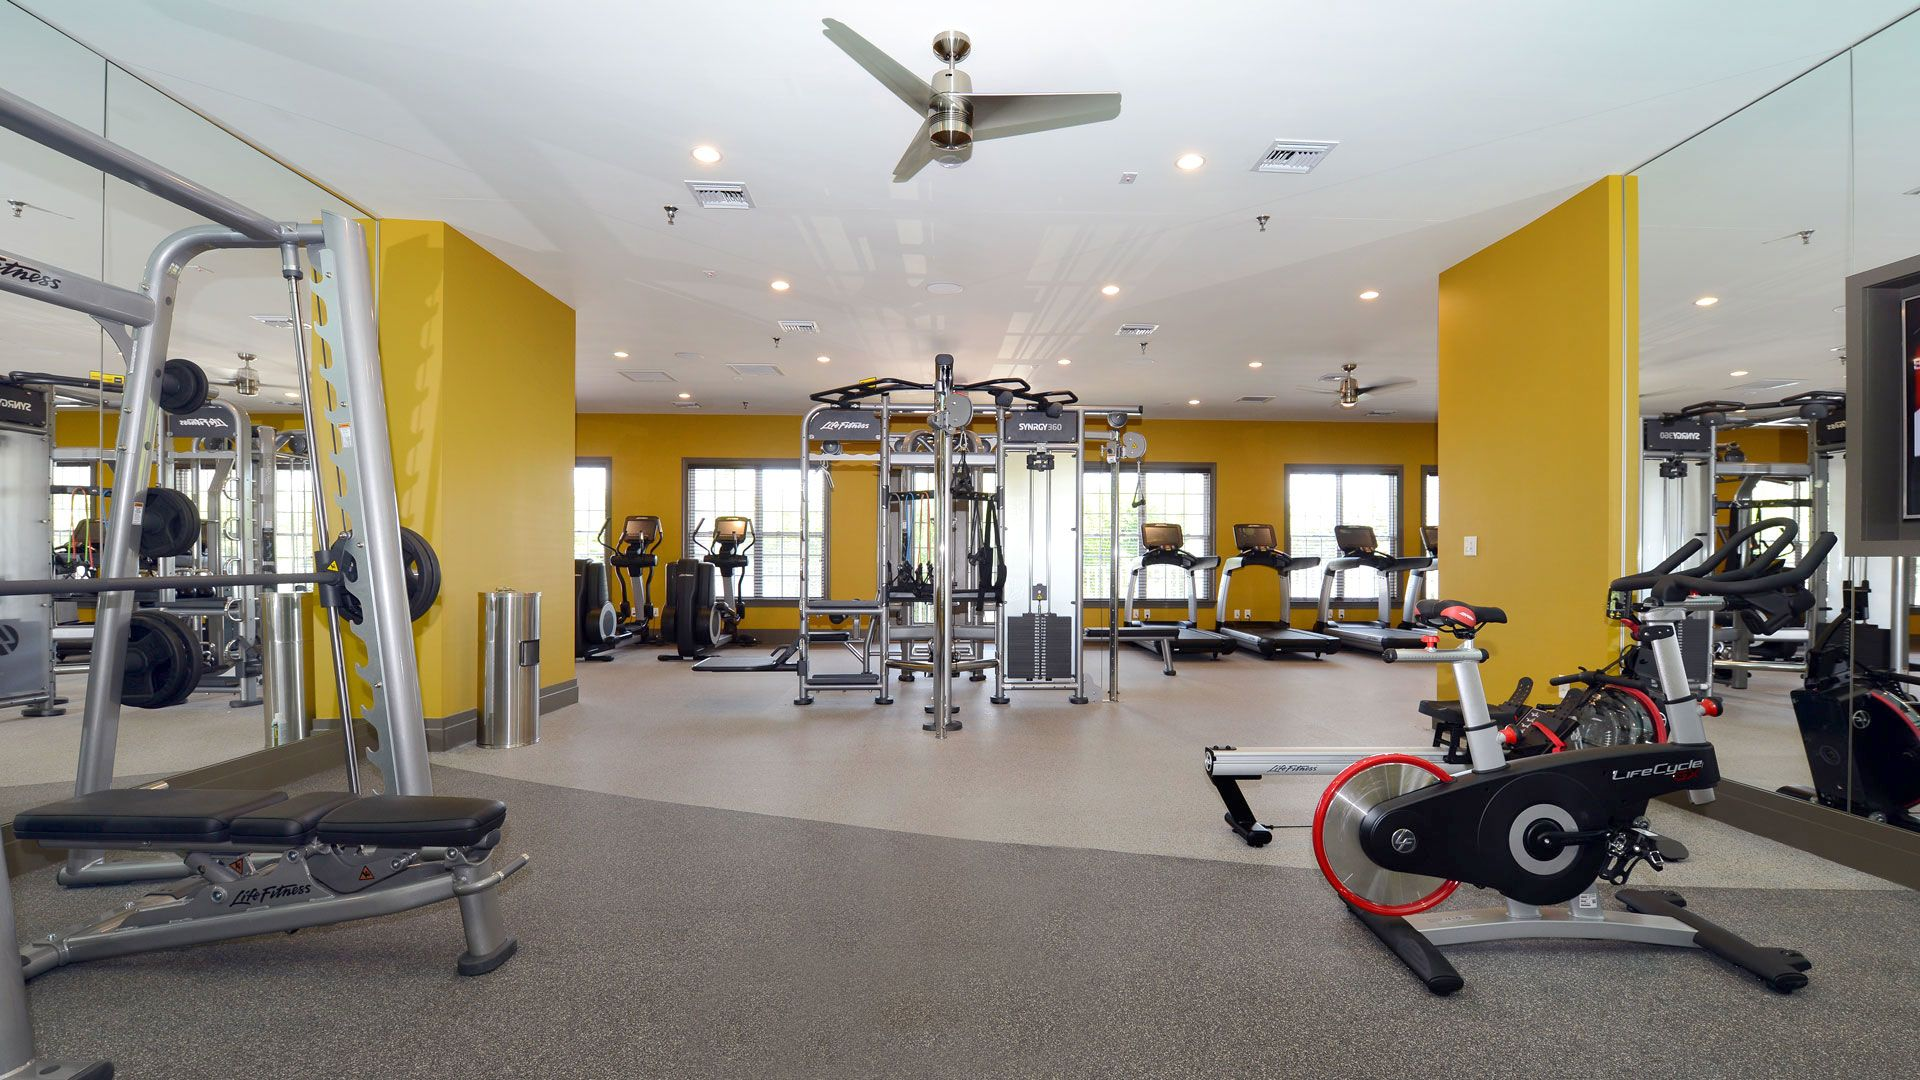 Reserve at Potomac Yard Apartments Fitness Center